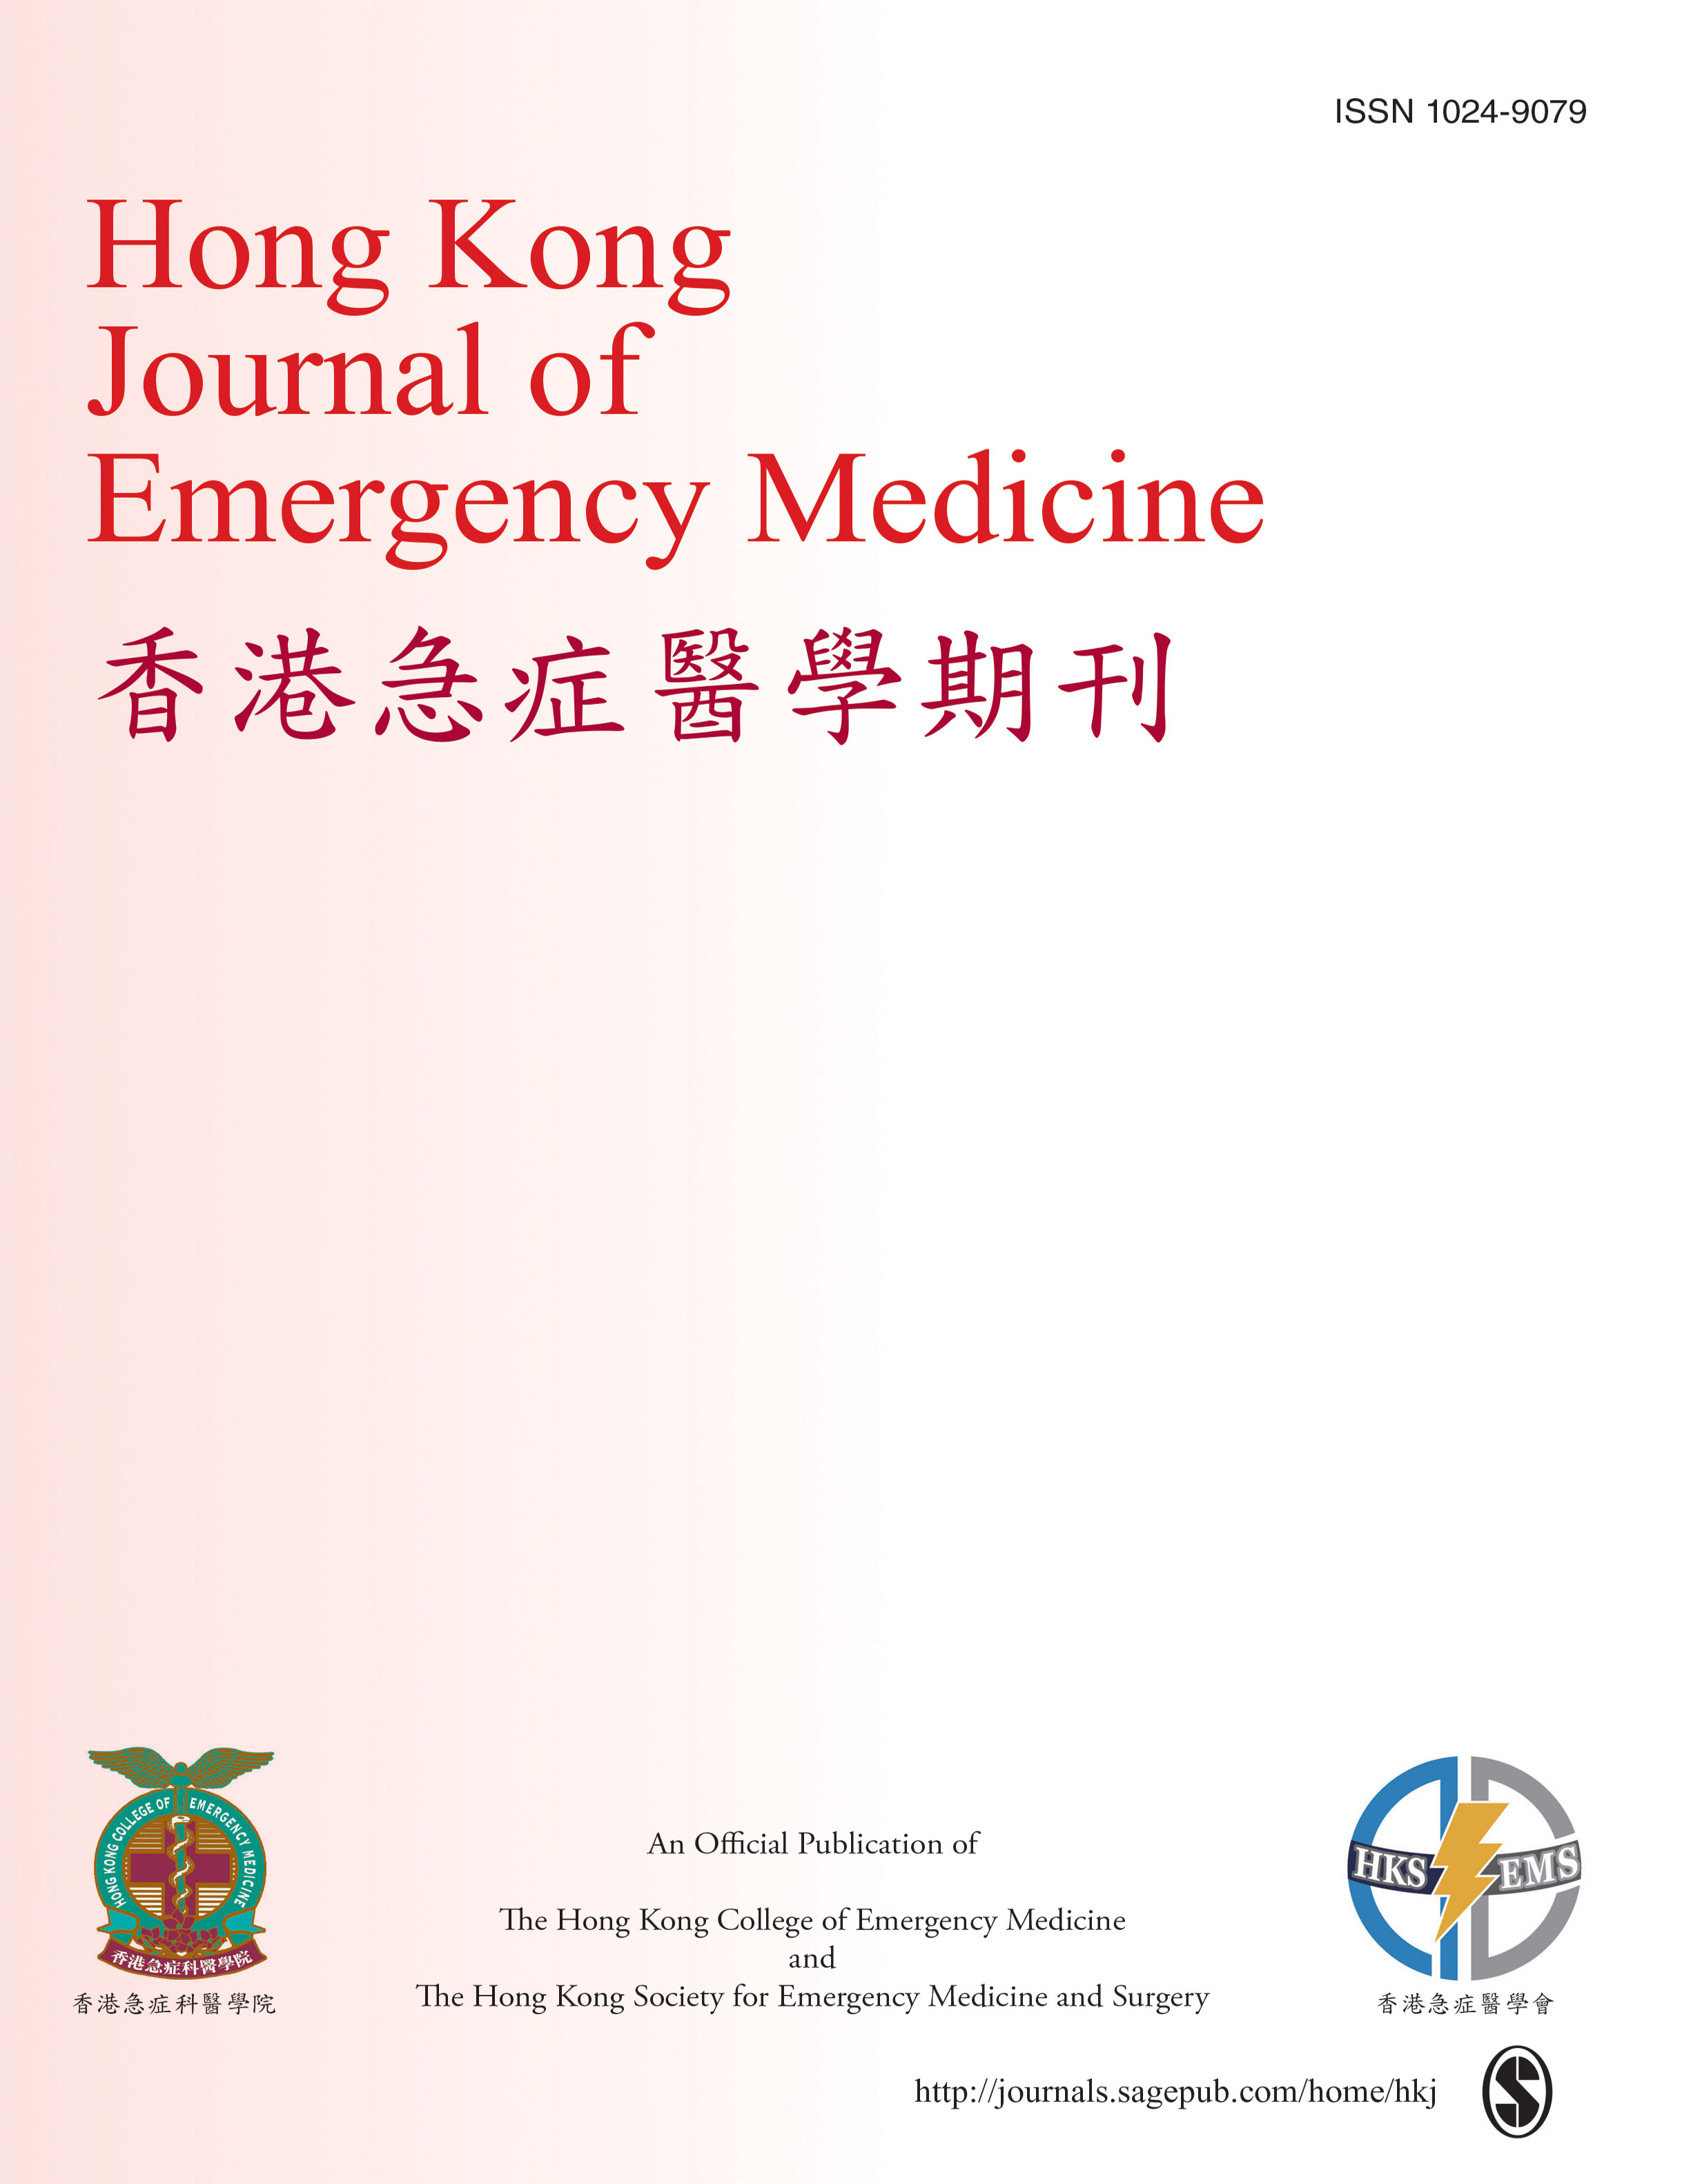 Hong Kong Journal of Emergency Medicine